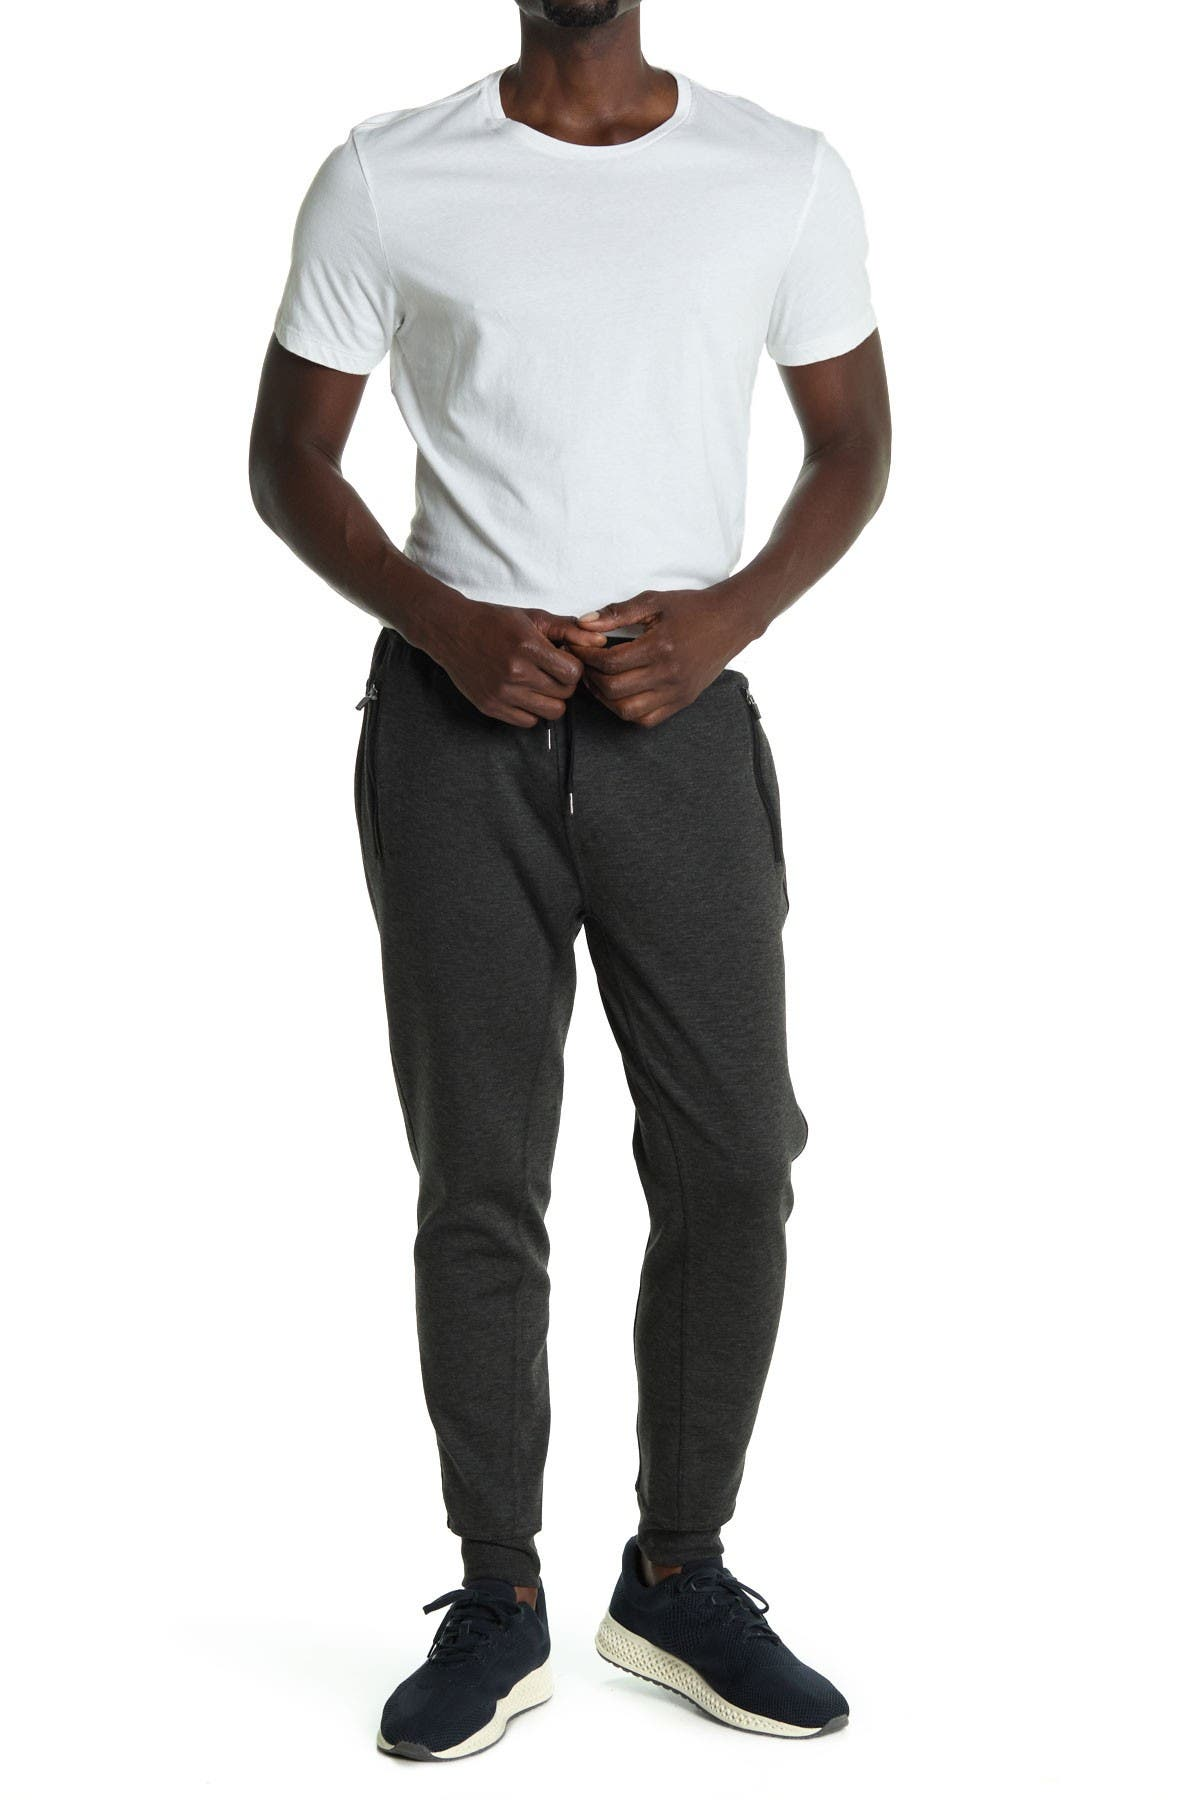 Image of 90 Degree By Reflex Front Pocket Joggers